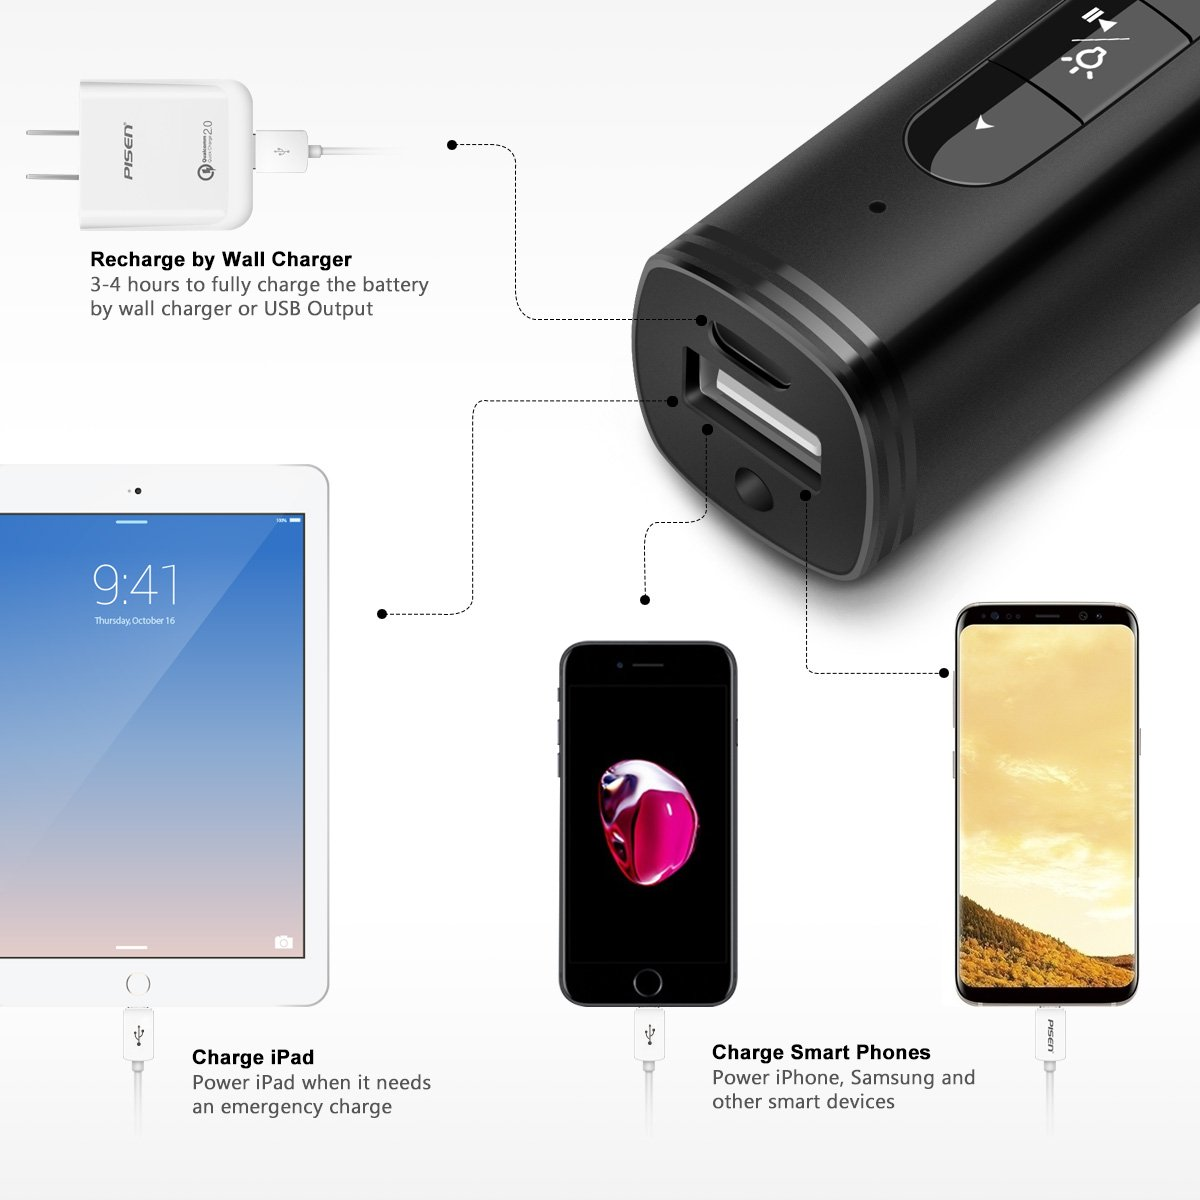 Amazon.com : PISEN Wireless Presenter RF 2.4GHz USB PowerPoint Clicker  Rechargeable Presentation & Remote Control with 2500mAh Emergency Power  Bank : Office ...